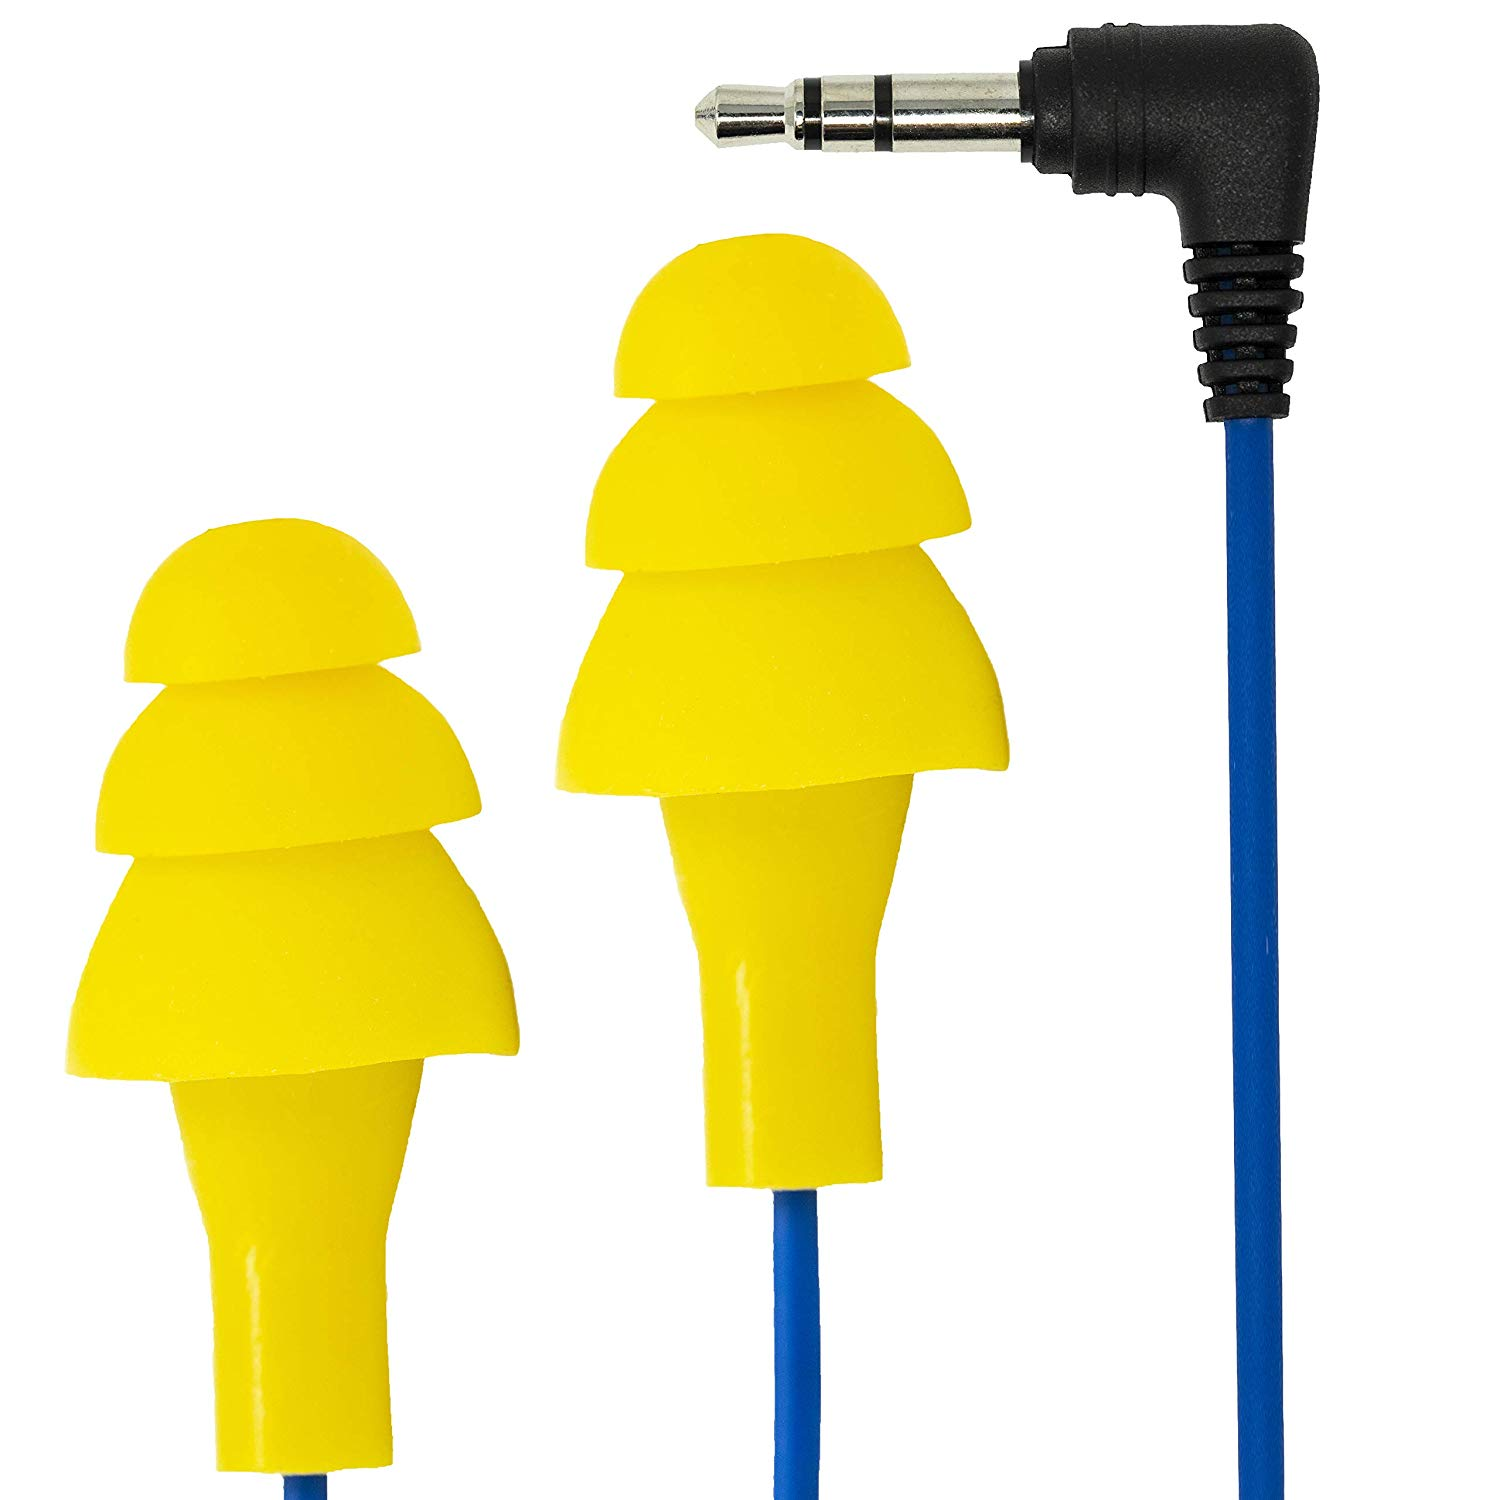 Plugfones Basic Earplug-Earbud Hybrid - Noise Reducing Earphones - Yellow: